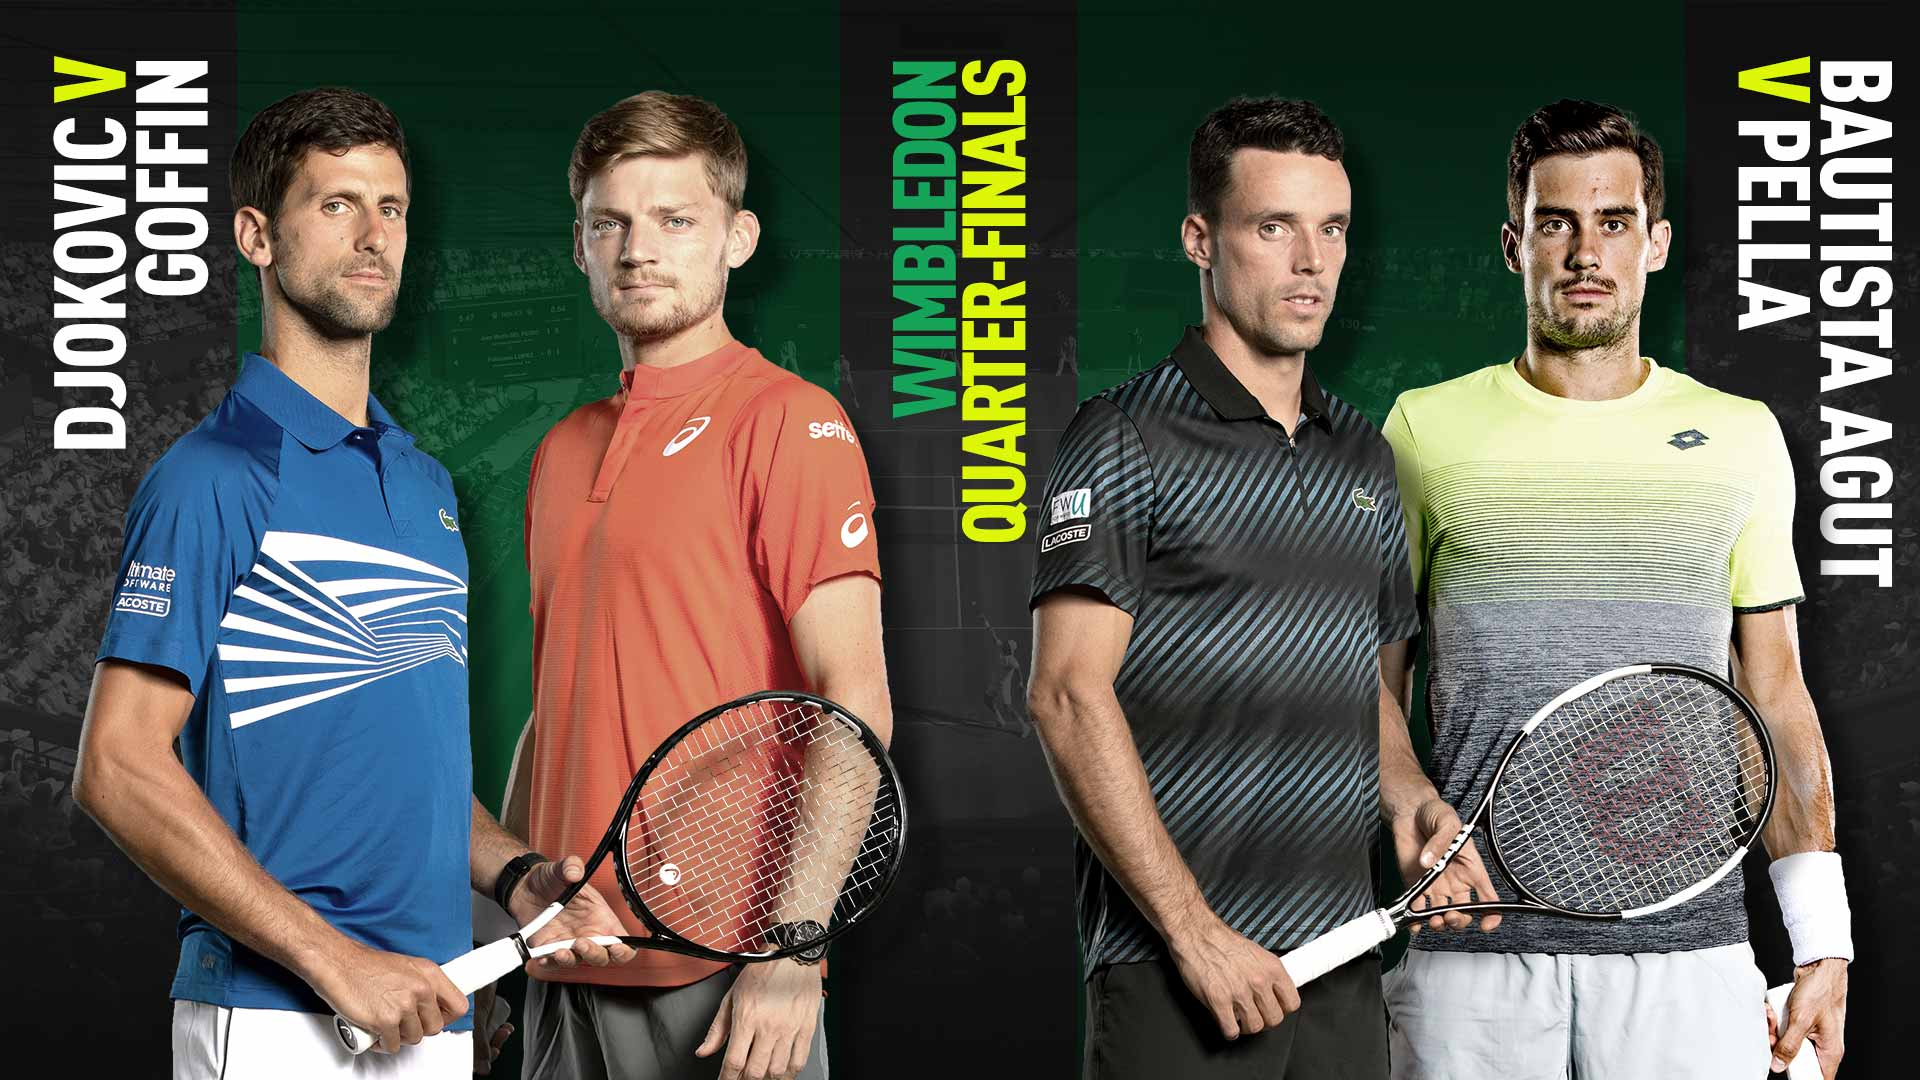 Novak Djokovic meets David Goffin, and Roberto Bautista Agut plays Guido Pella on Wednesday in the Wimbledon quarter-finals